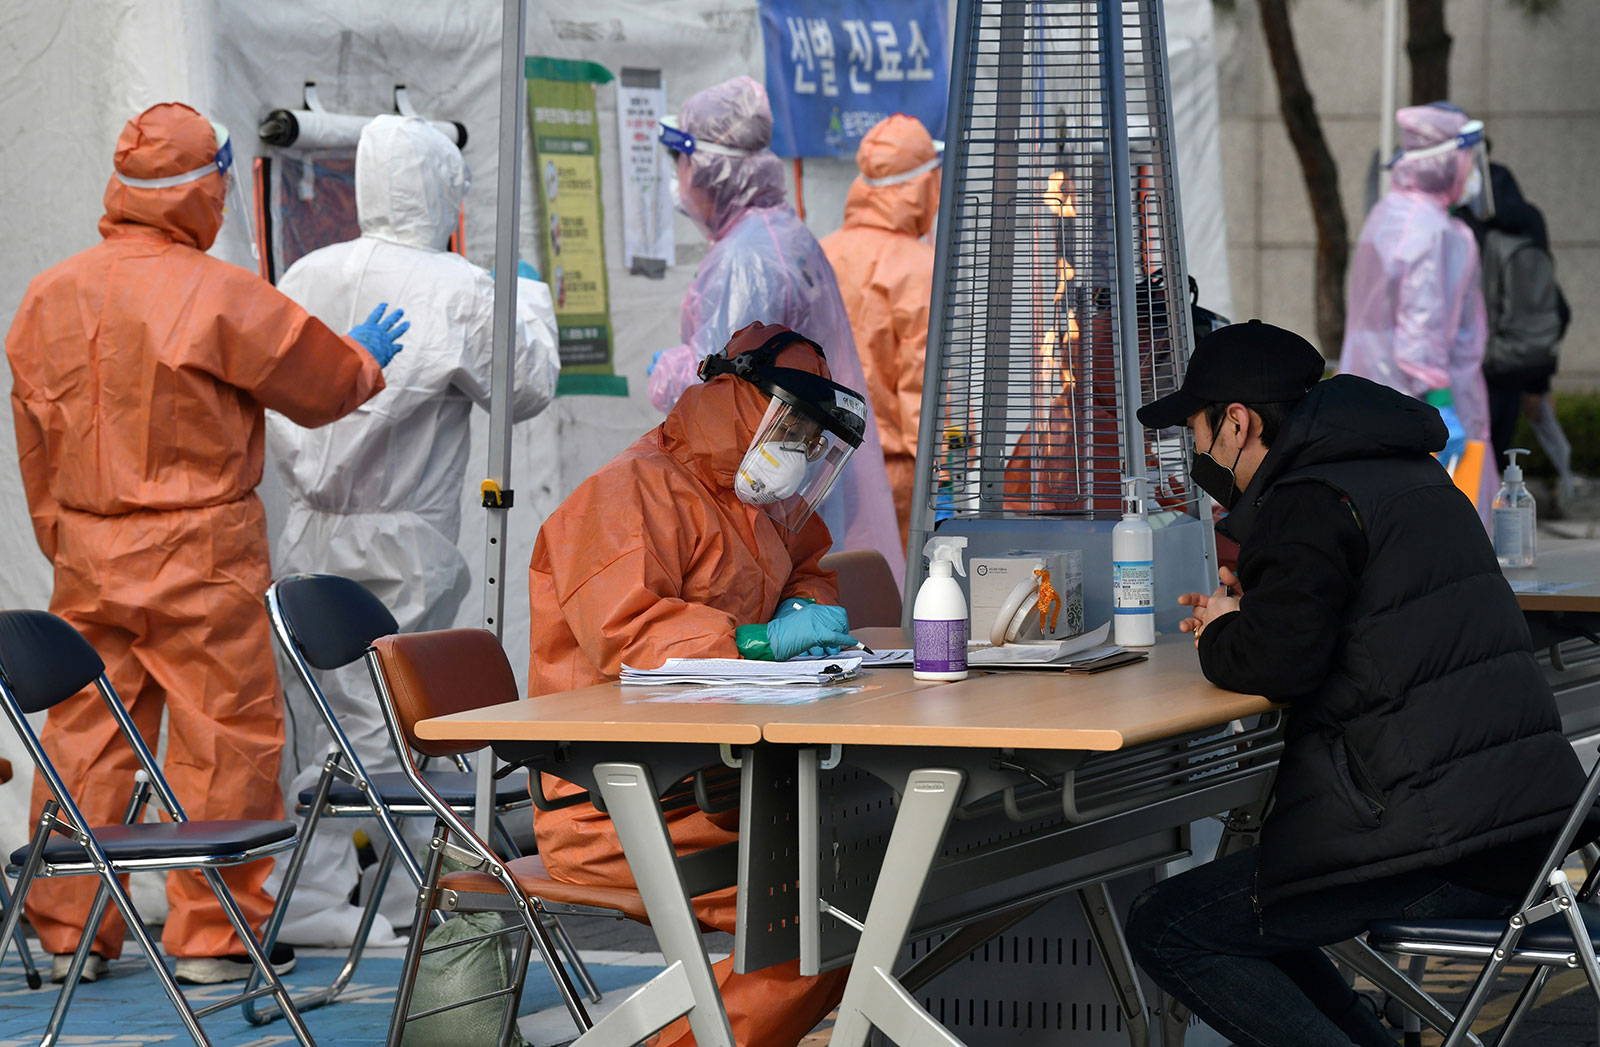 A medical staff member talks with a man with suspected symptoms of the COVID-19 coronavirus at a testing facility in Seoul on March 4.